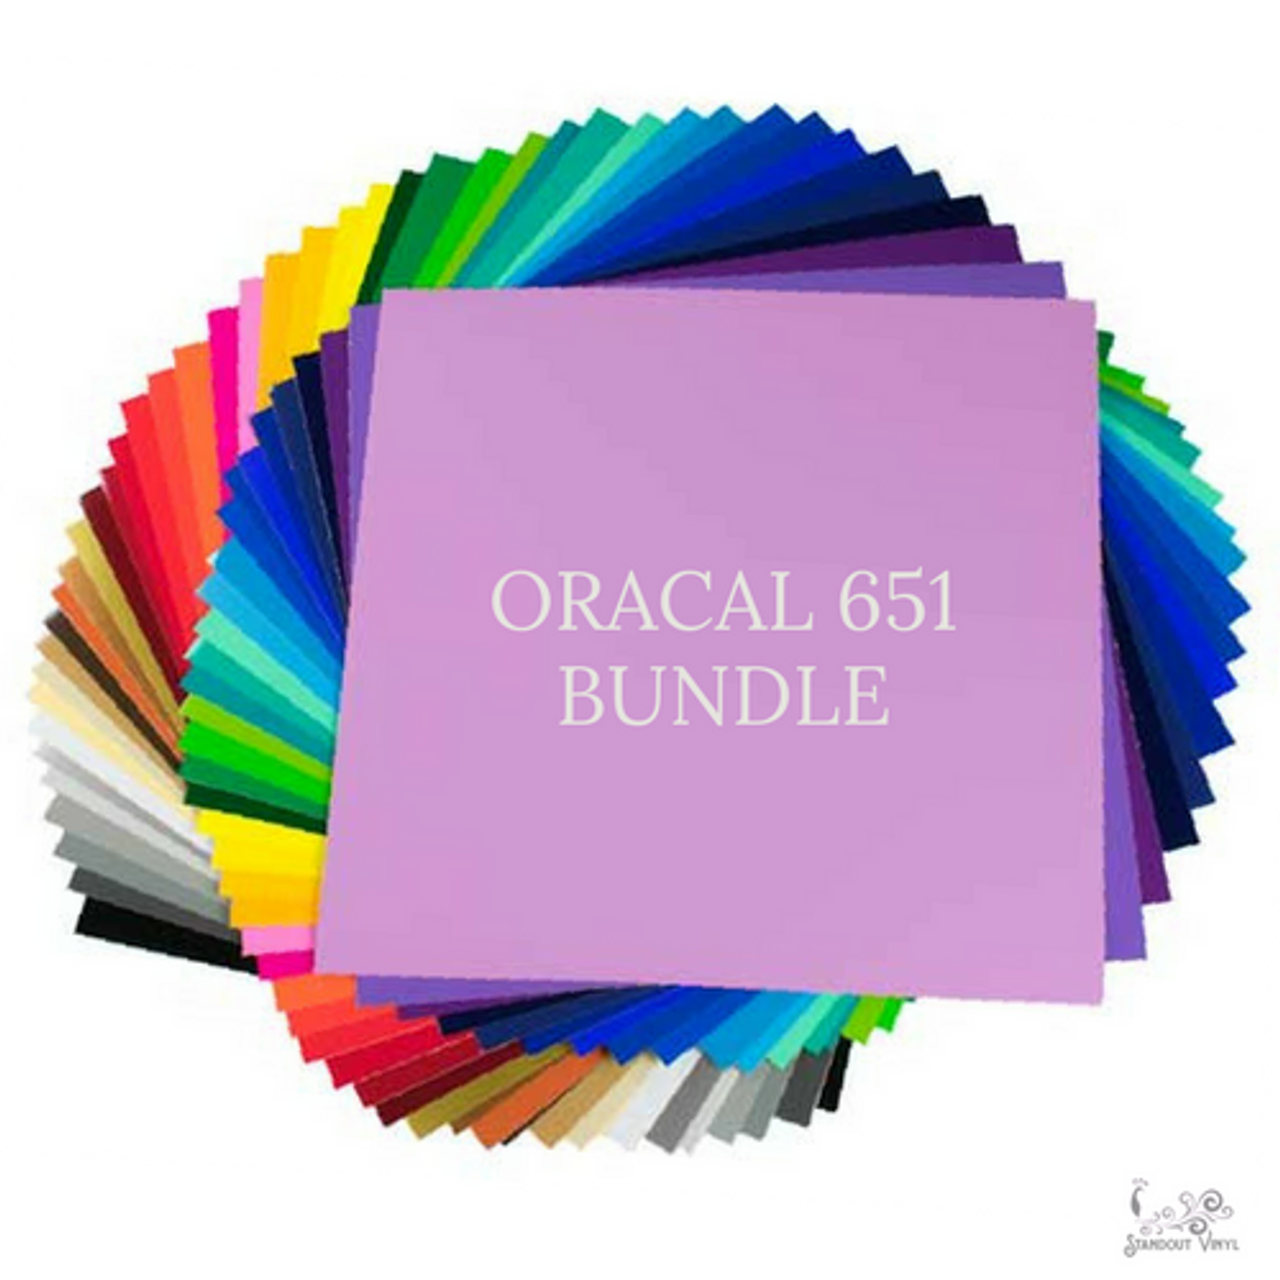 Oracal 651 All Color Bundle: 44 Assorted 12